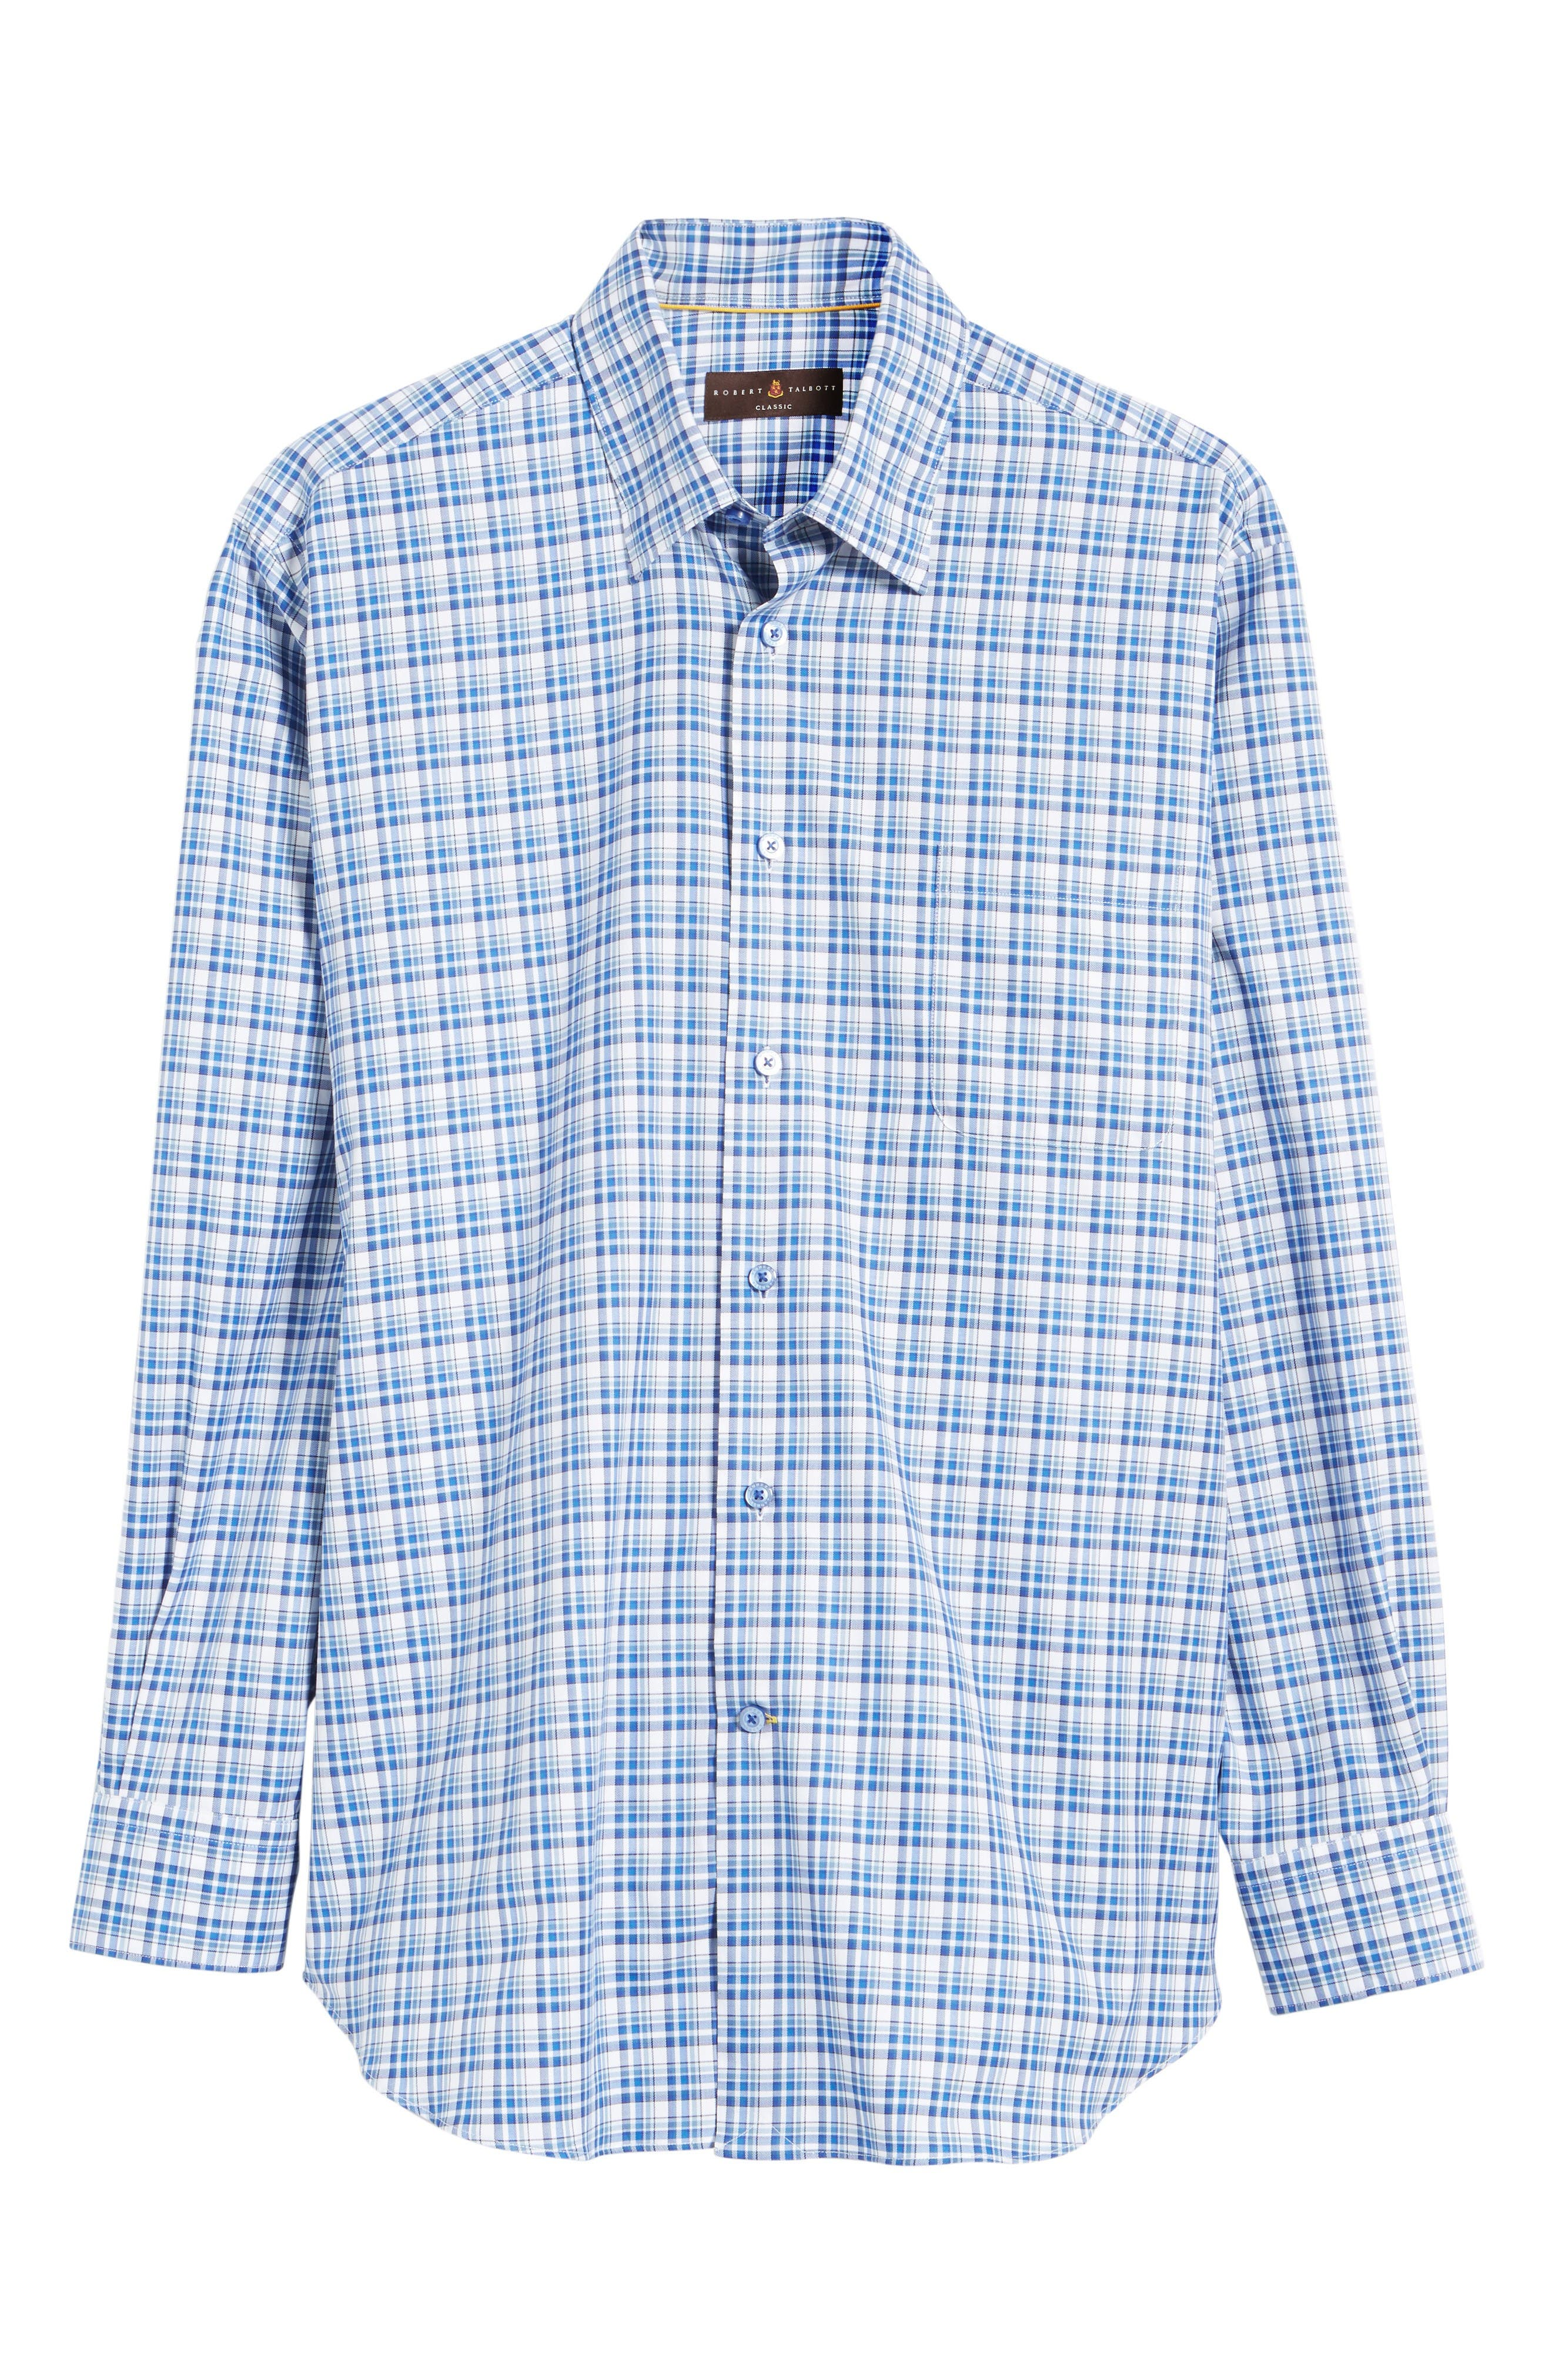 Anderson Classic Fit Plaid Micro Twill Sport Shirt,                             Alternate thumbnail 6, color,                             Pacific